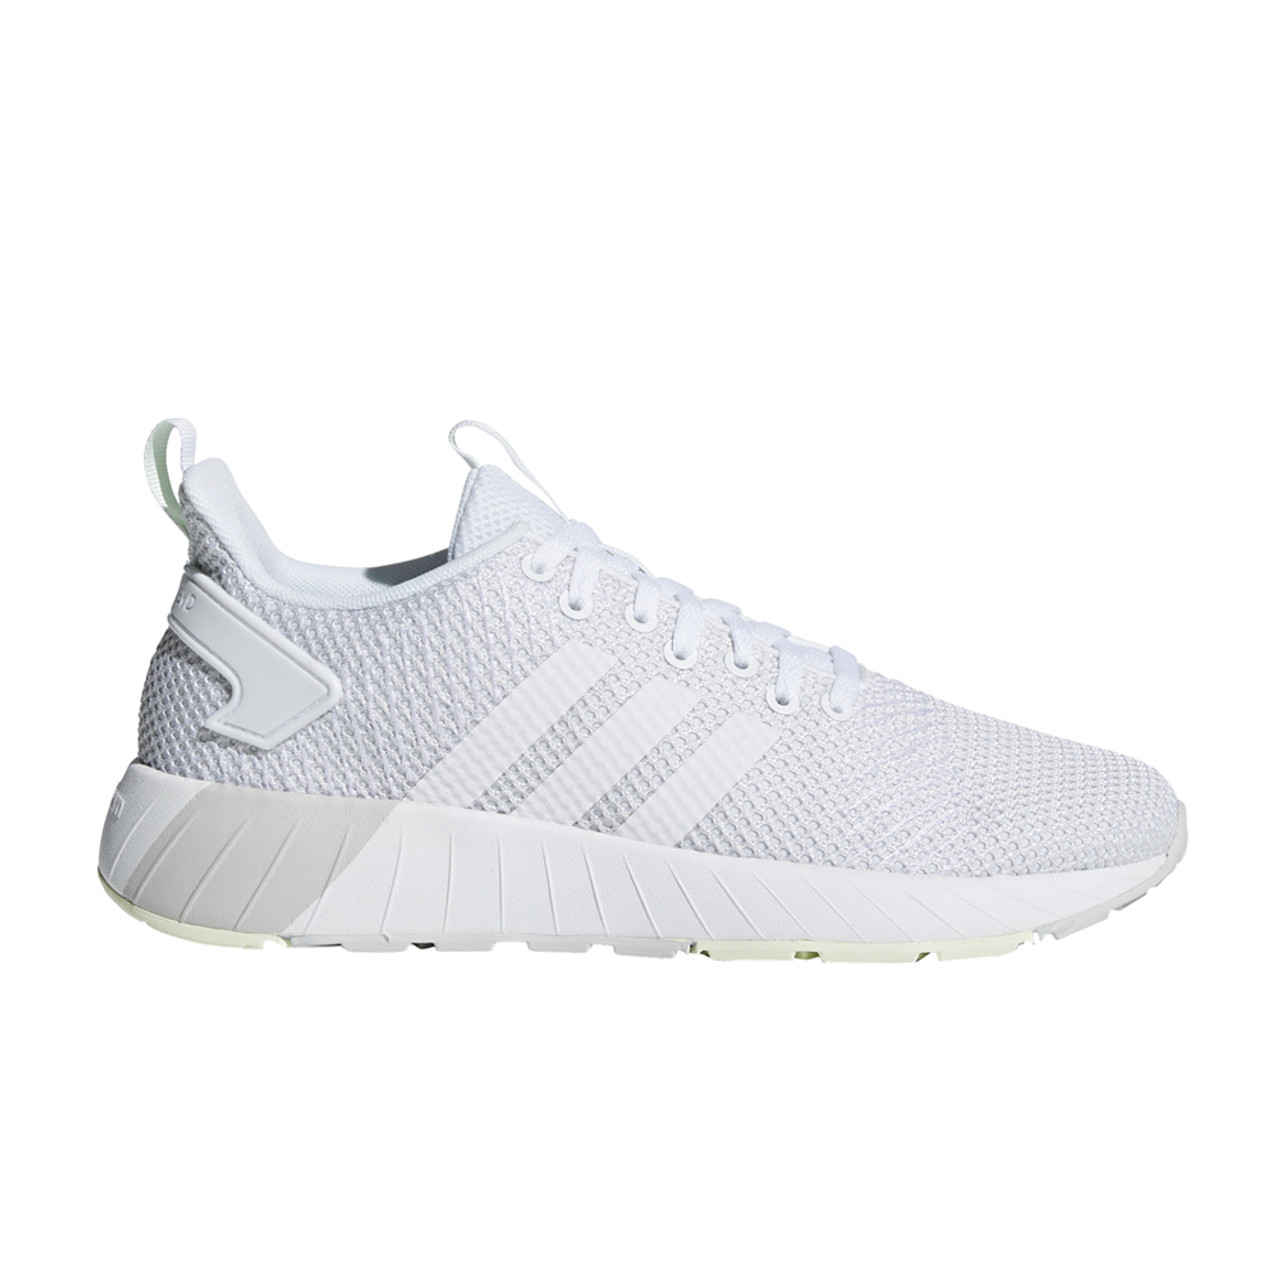 quality design 7e4b0 61e27 Adidas Womens Questar BYD Sneaker GreyWhite - Shop now  Shoolu.com